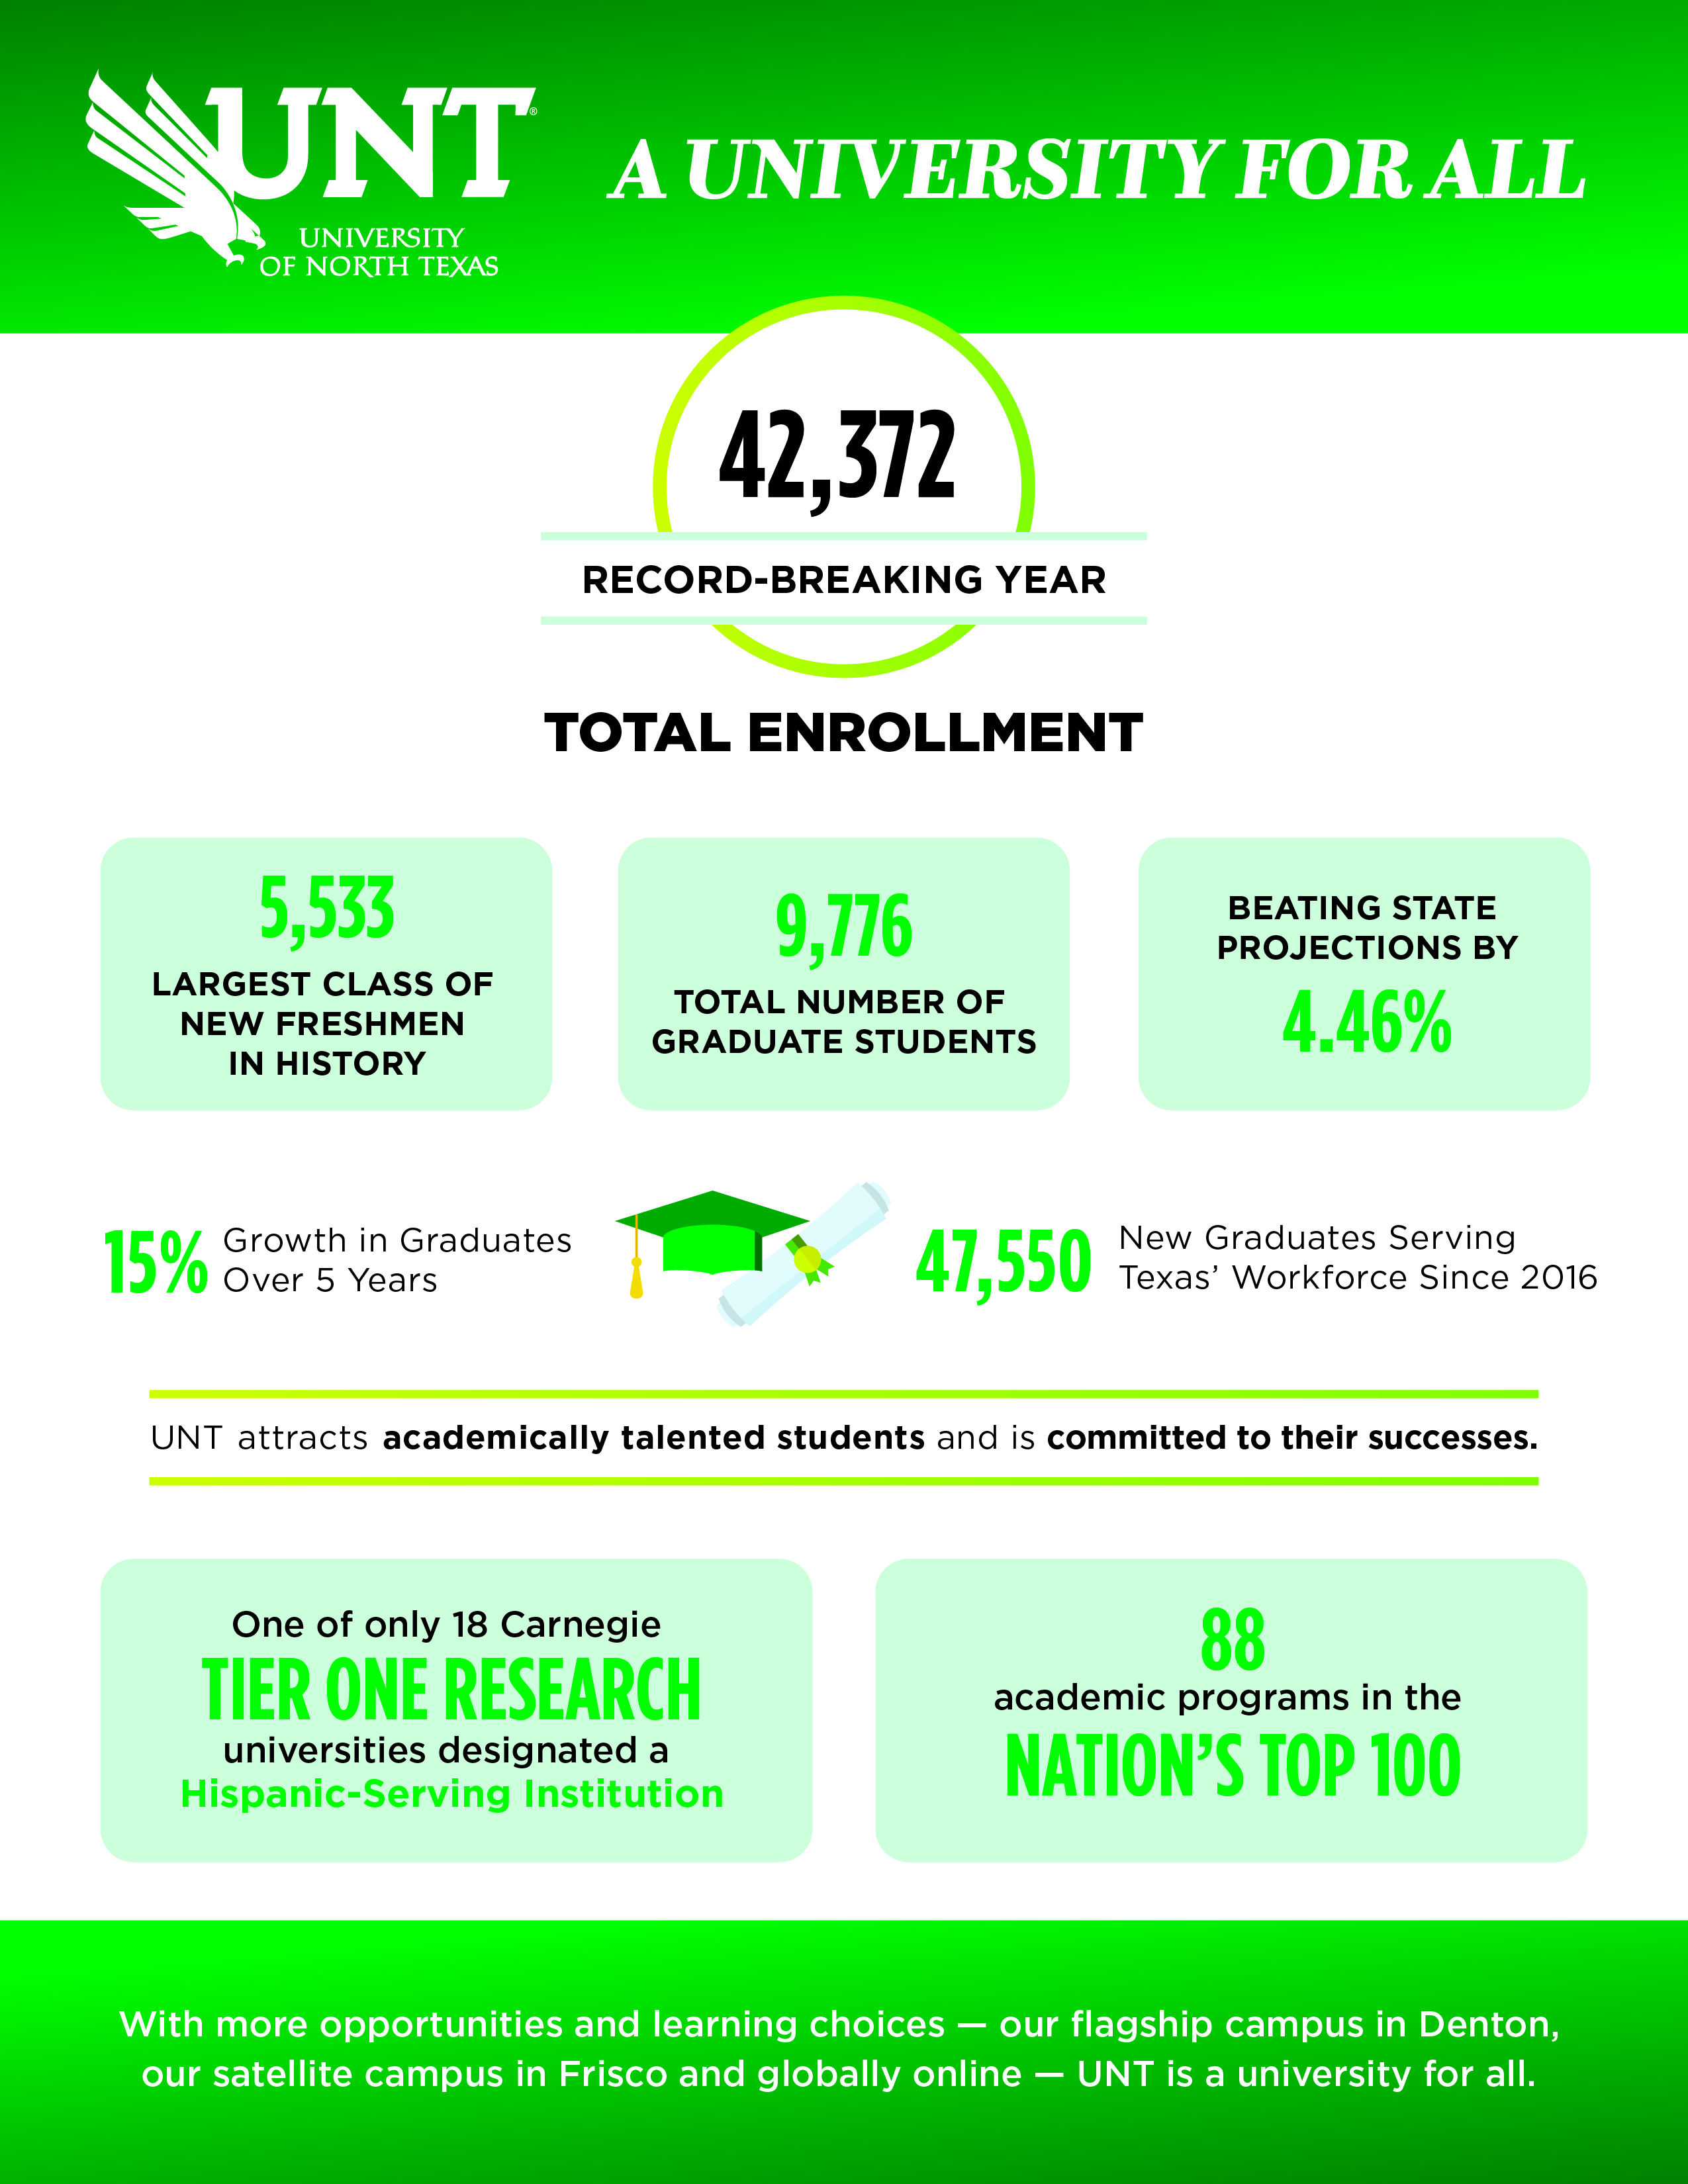 It's a 3-peat: UNT grows again, enrolls 42,372 to defy national trend